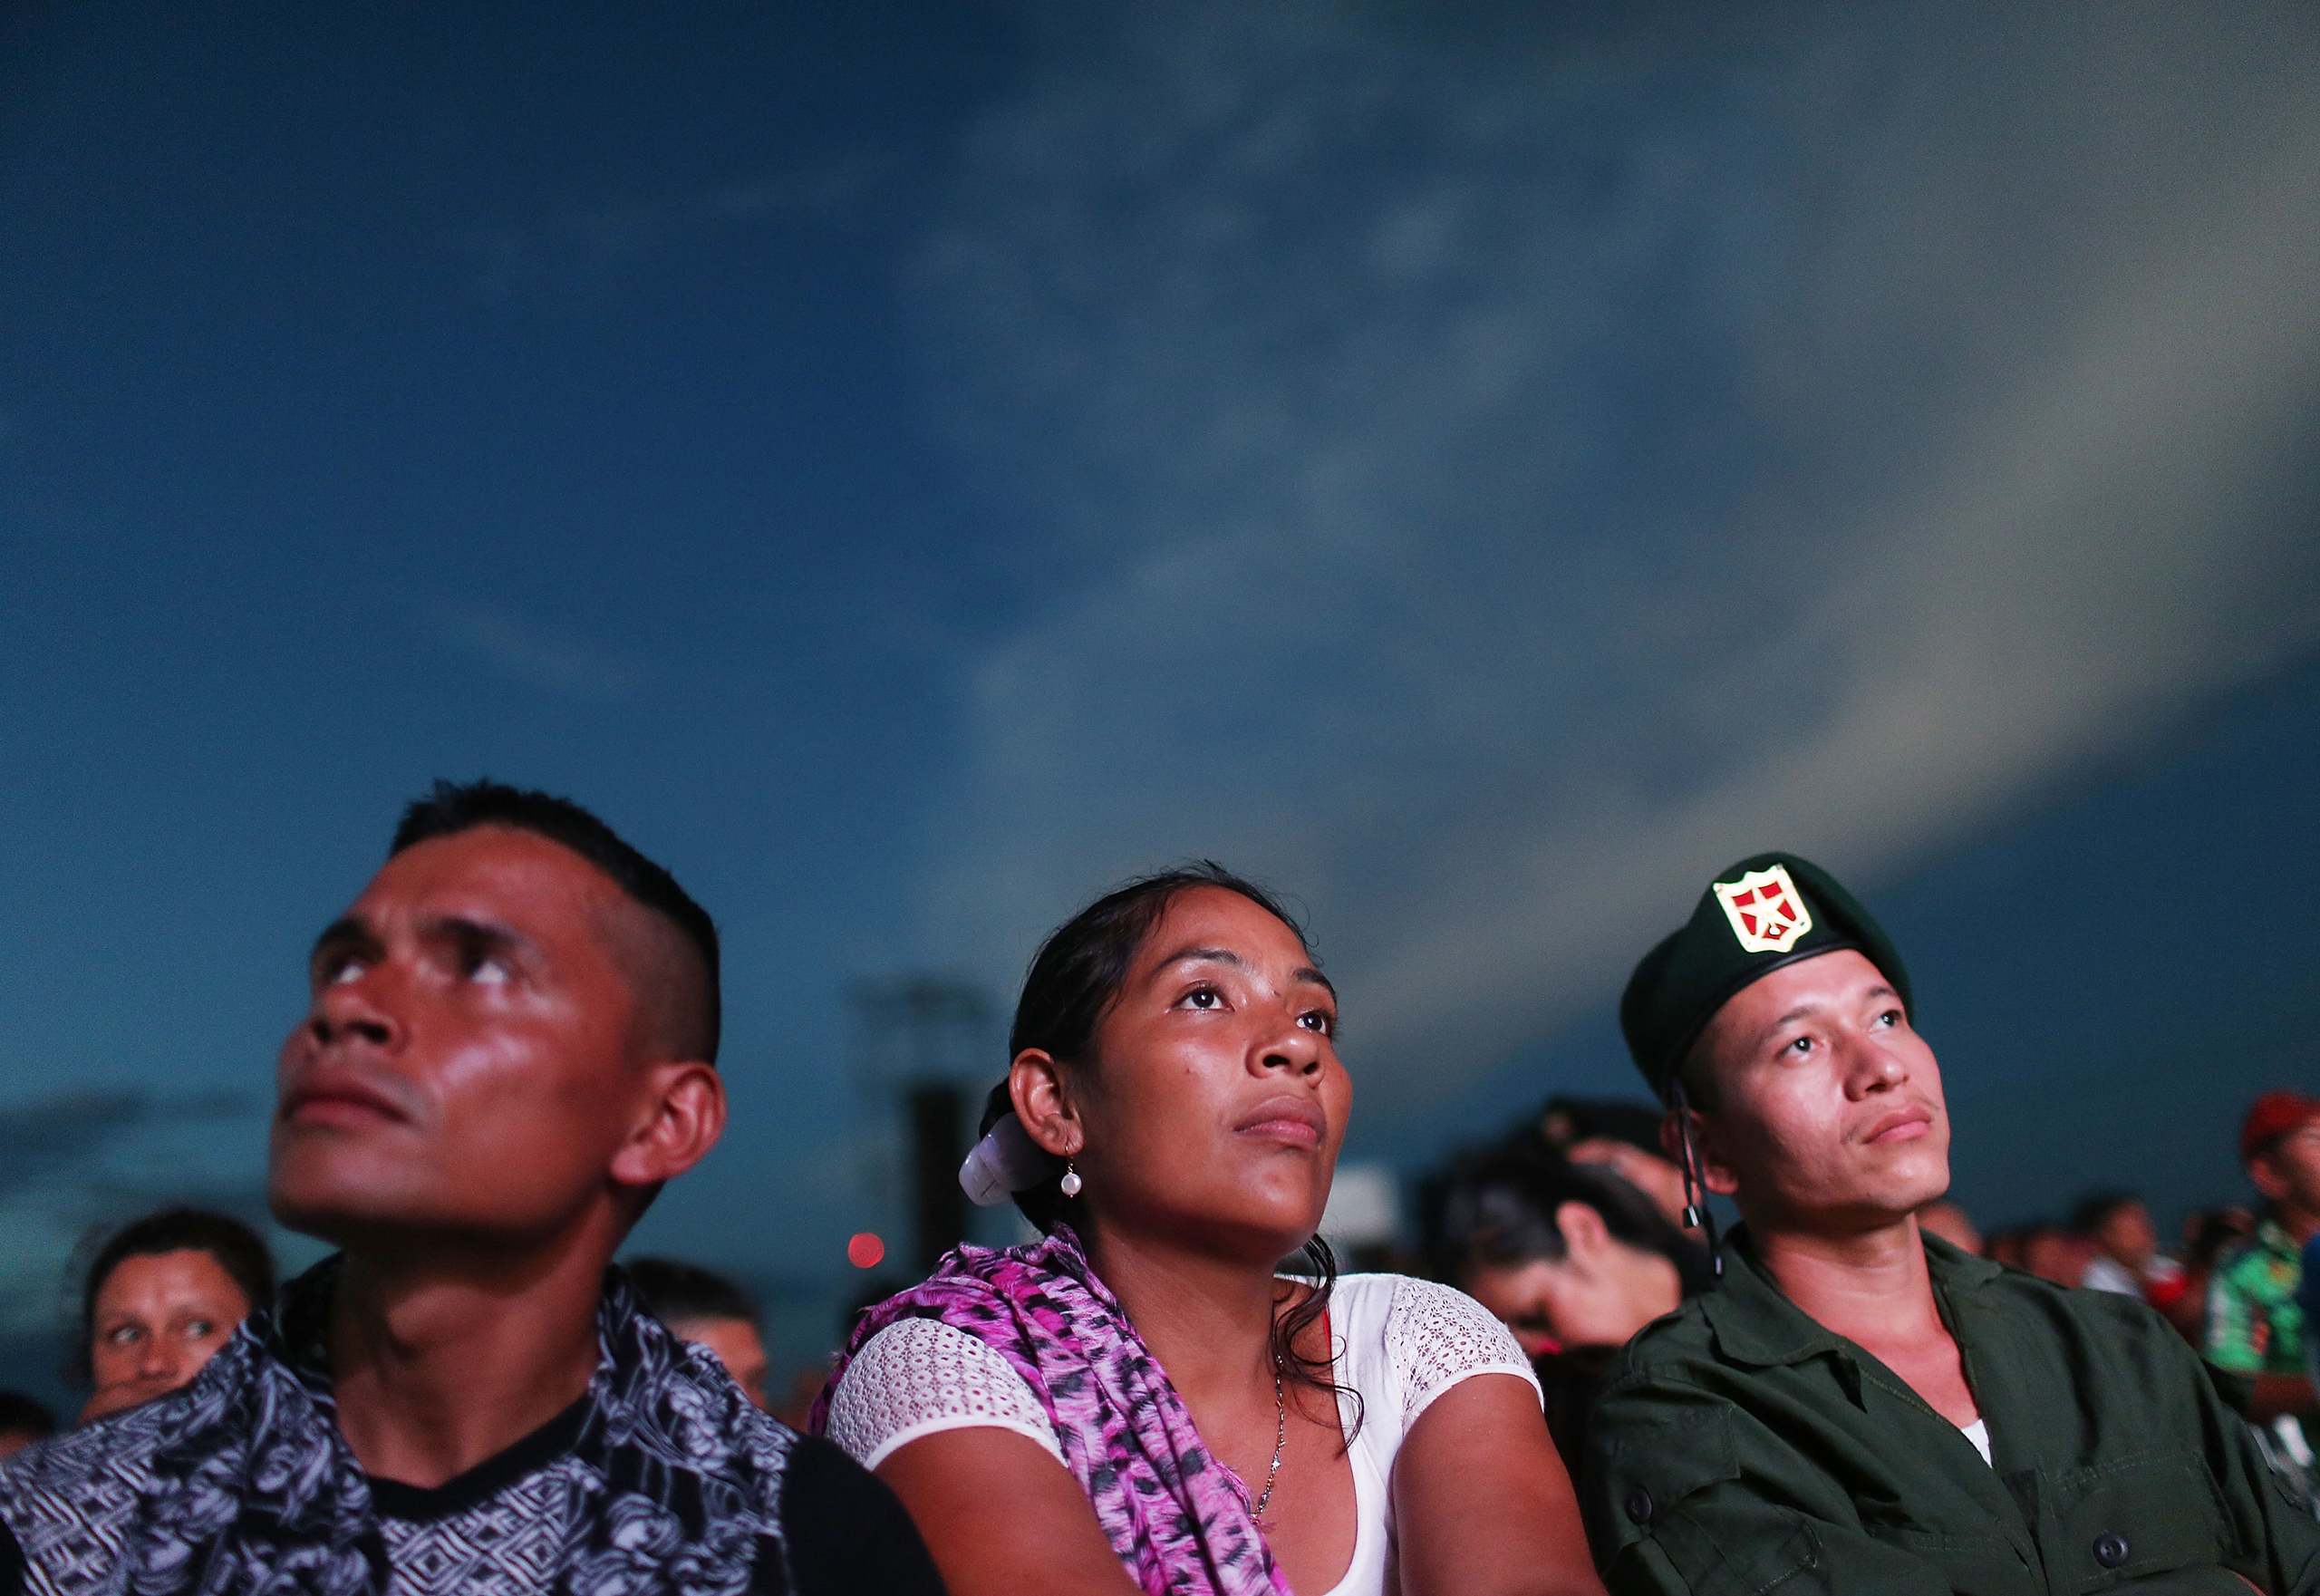 Revolutionary Armed Forces of Colombia (FARC) rebels watch a live broadcast of the peace agreement ceremony at a FARC encampment in the remote Yari plains near El Diamante, Colombia, on Sept. 26, 2016.